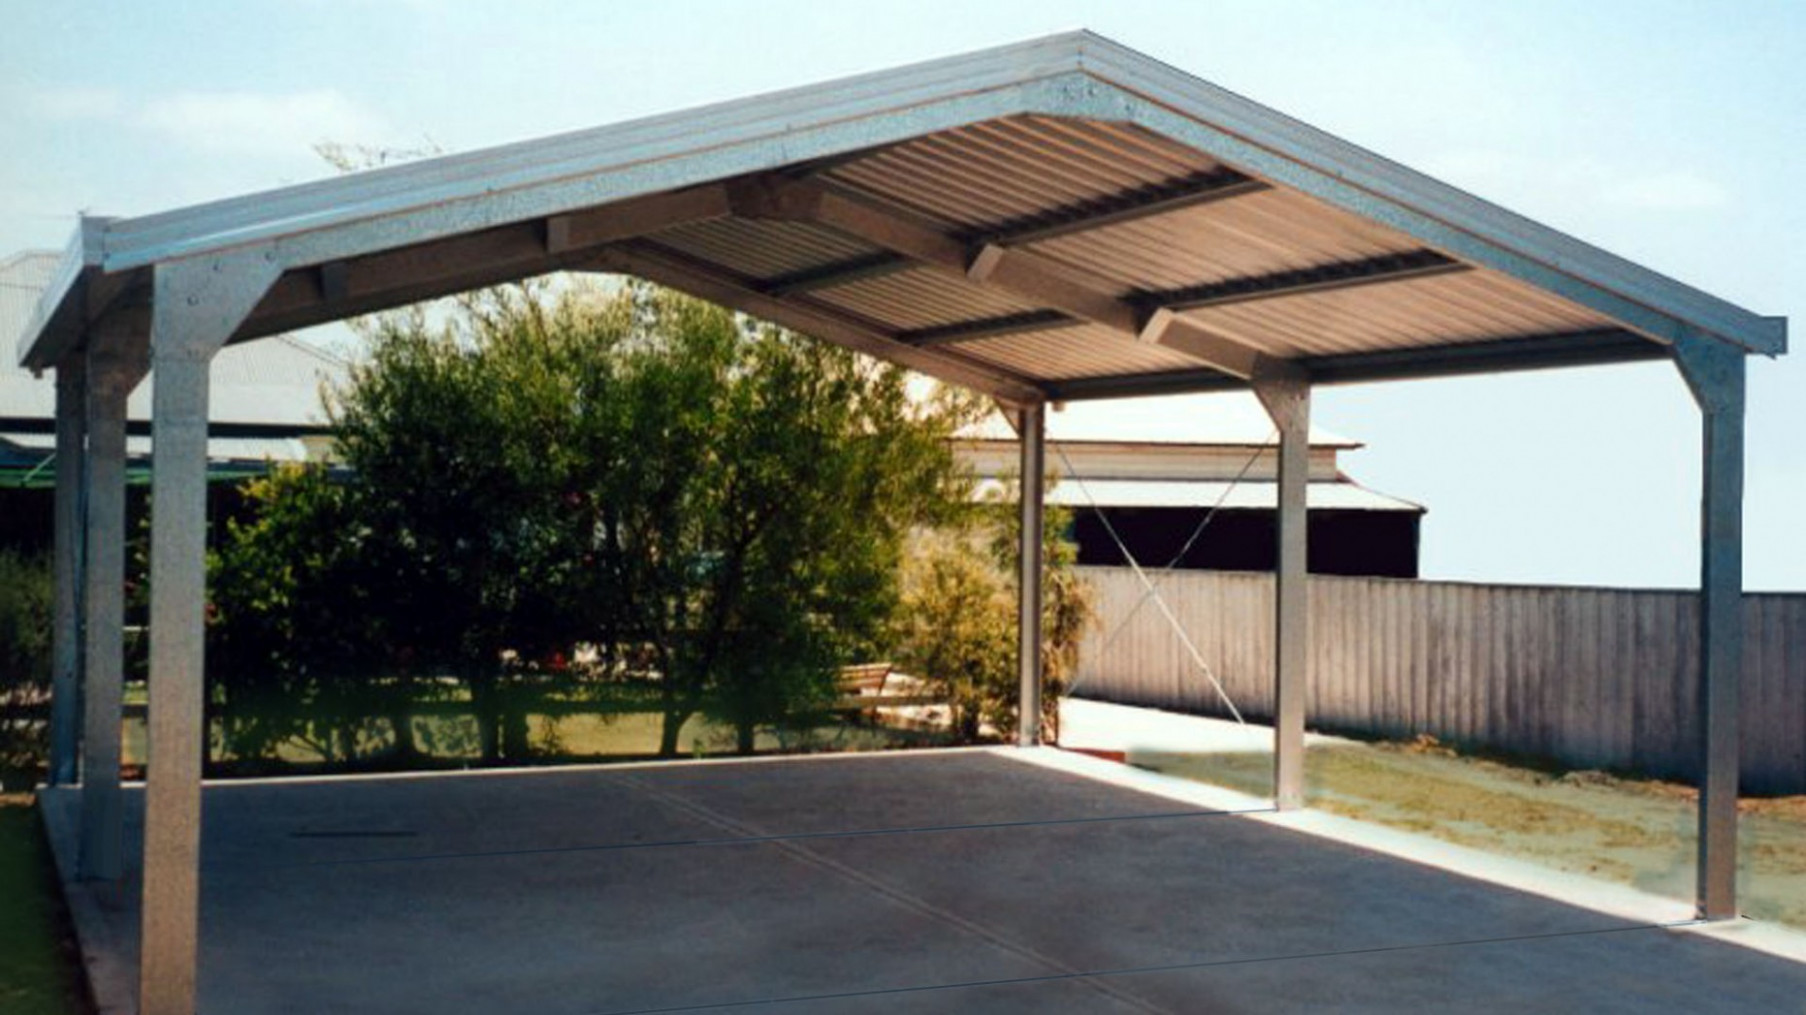 18 Unconventional Knowledge About Used | Creative Car Port ..